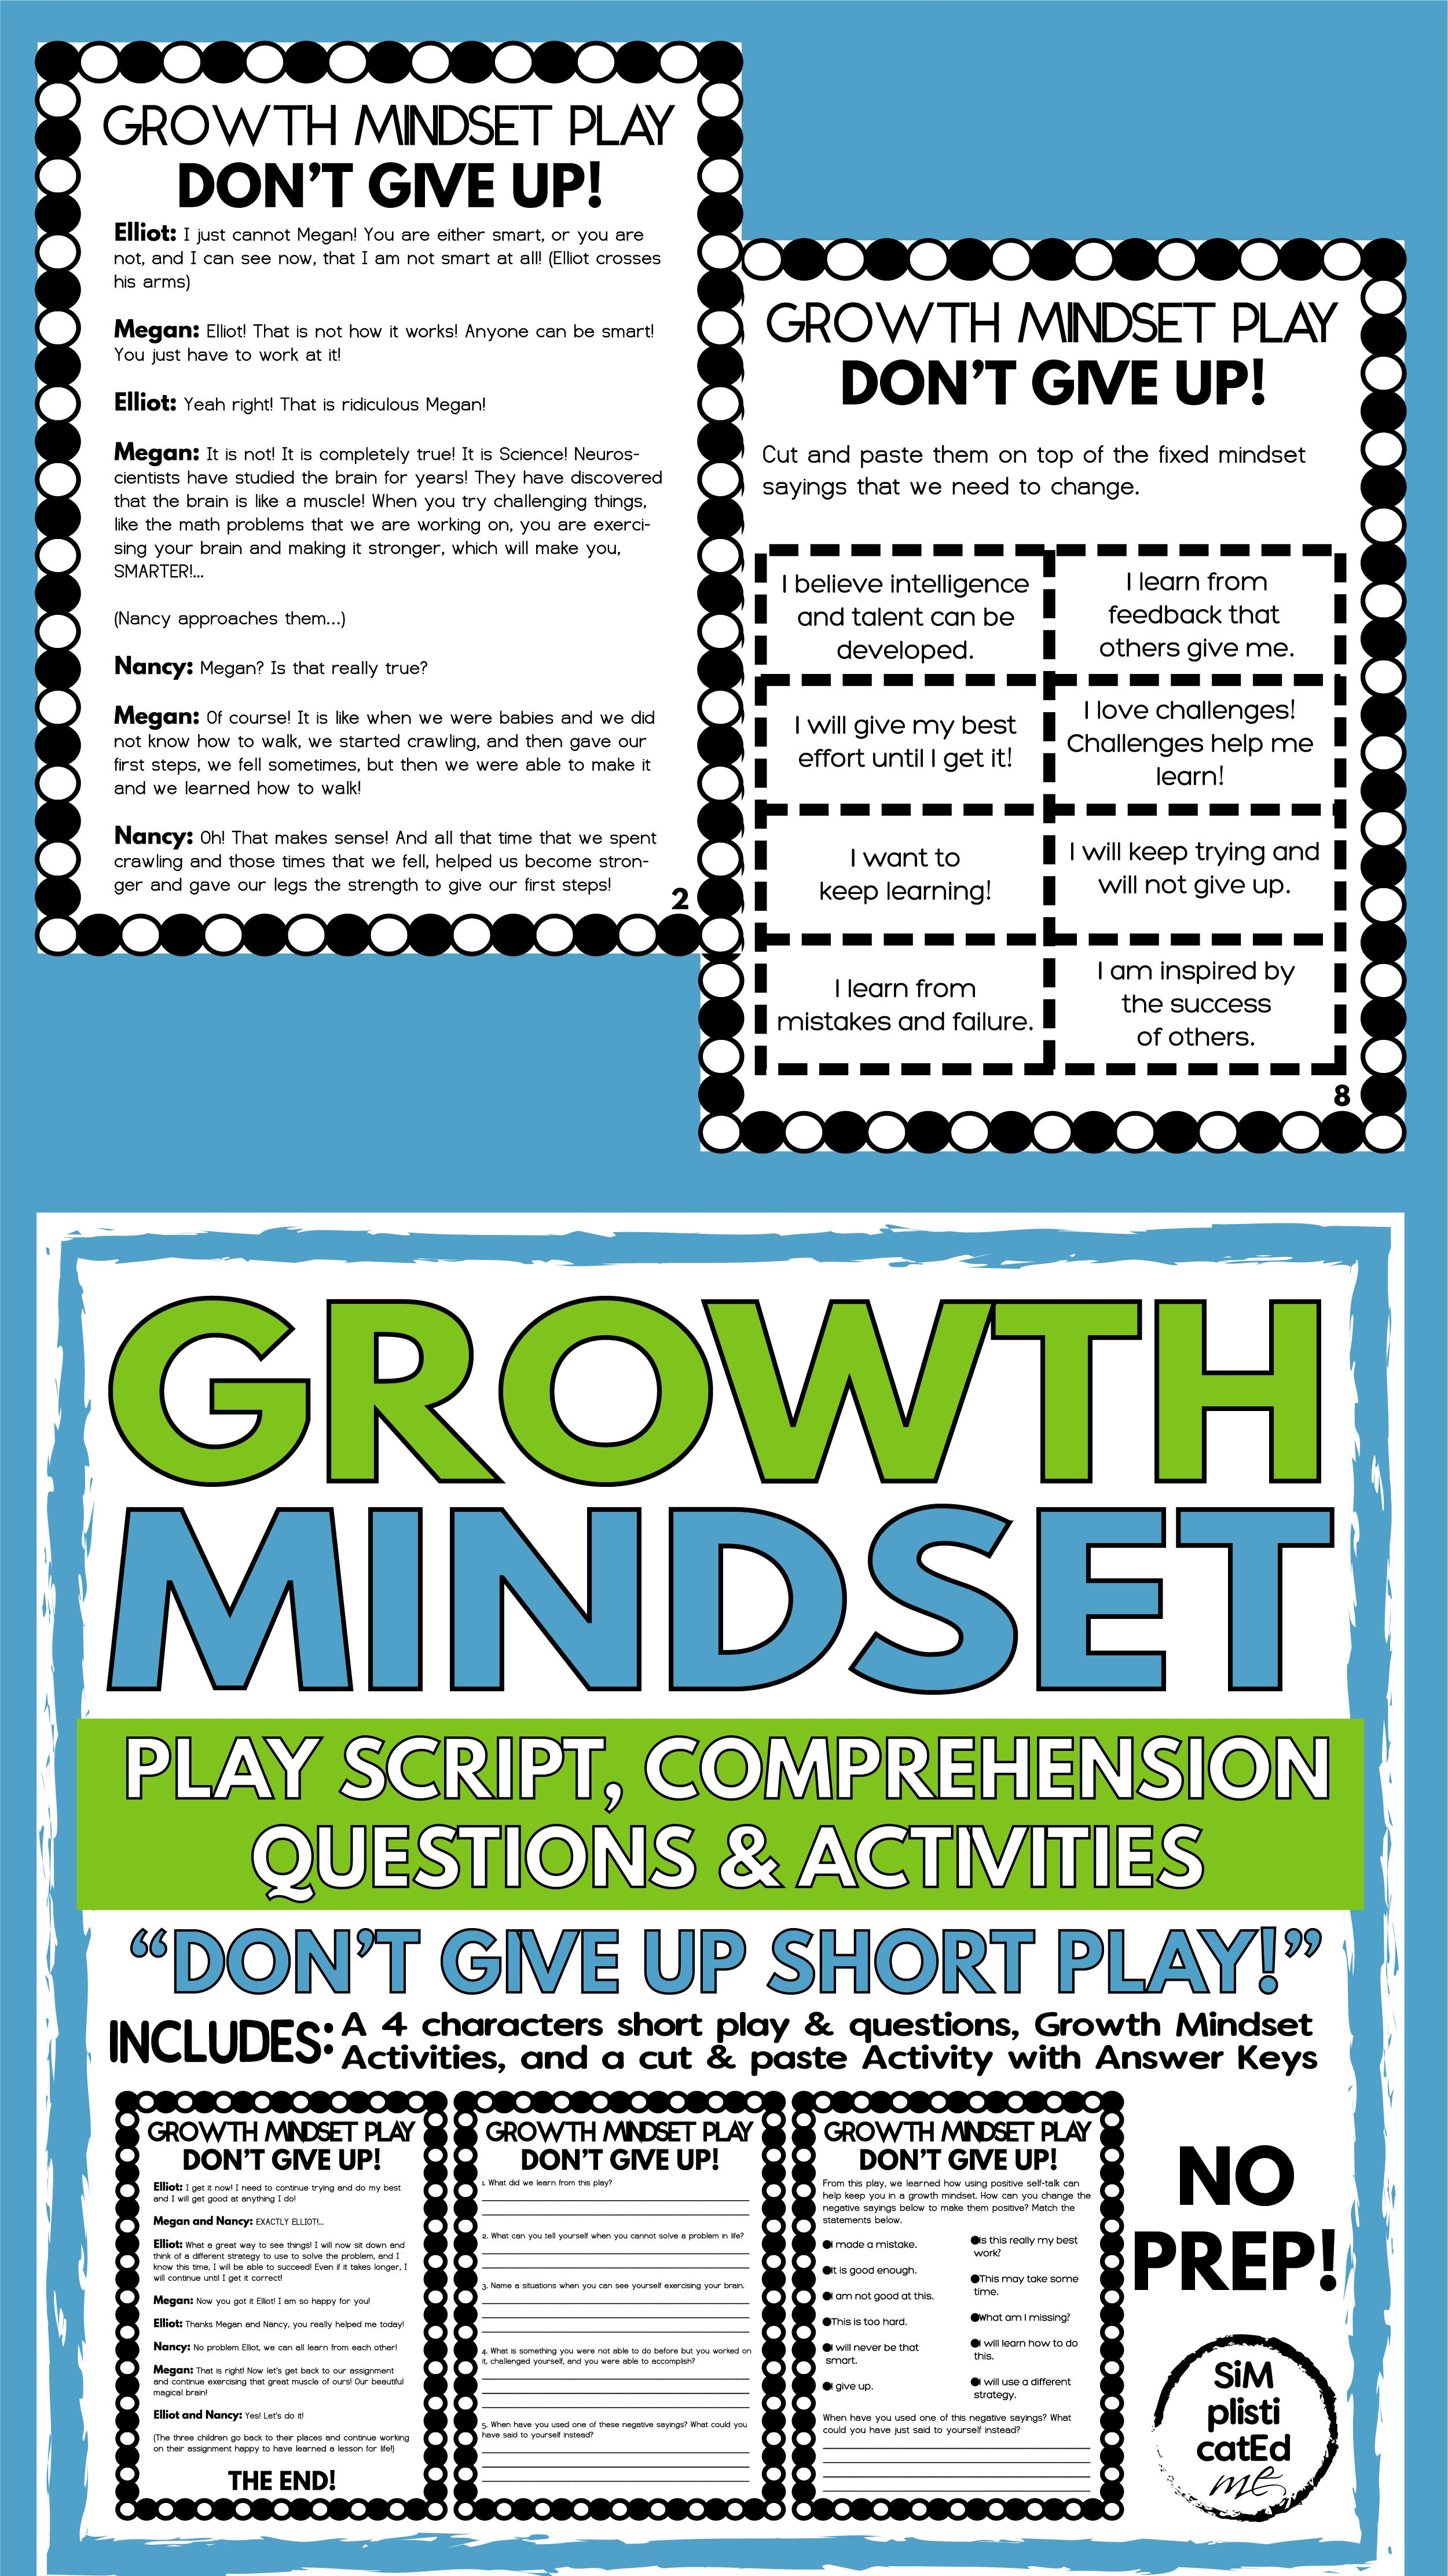 Growth Mindset Short Script Play Comprehension Questions